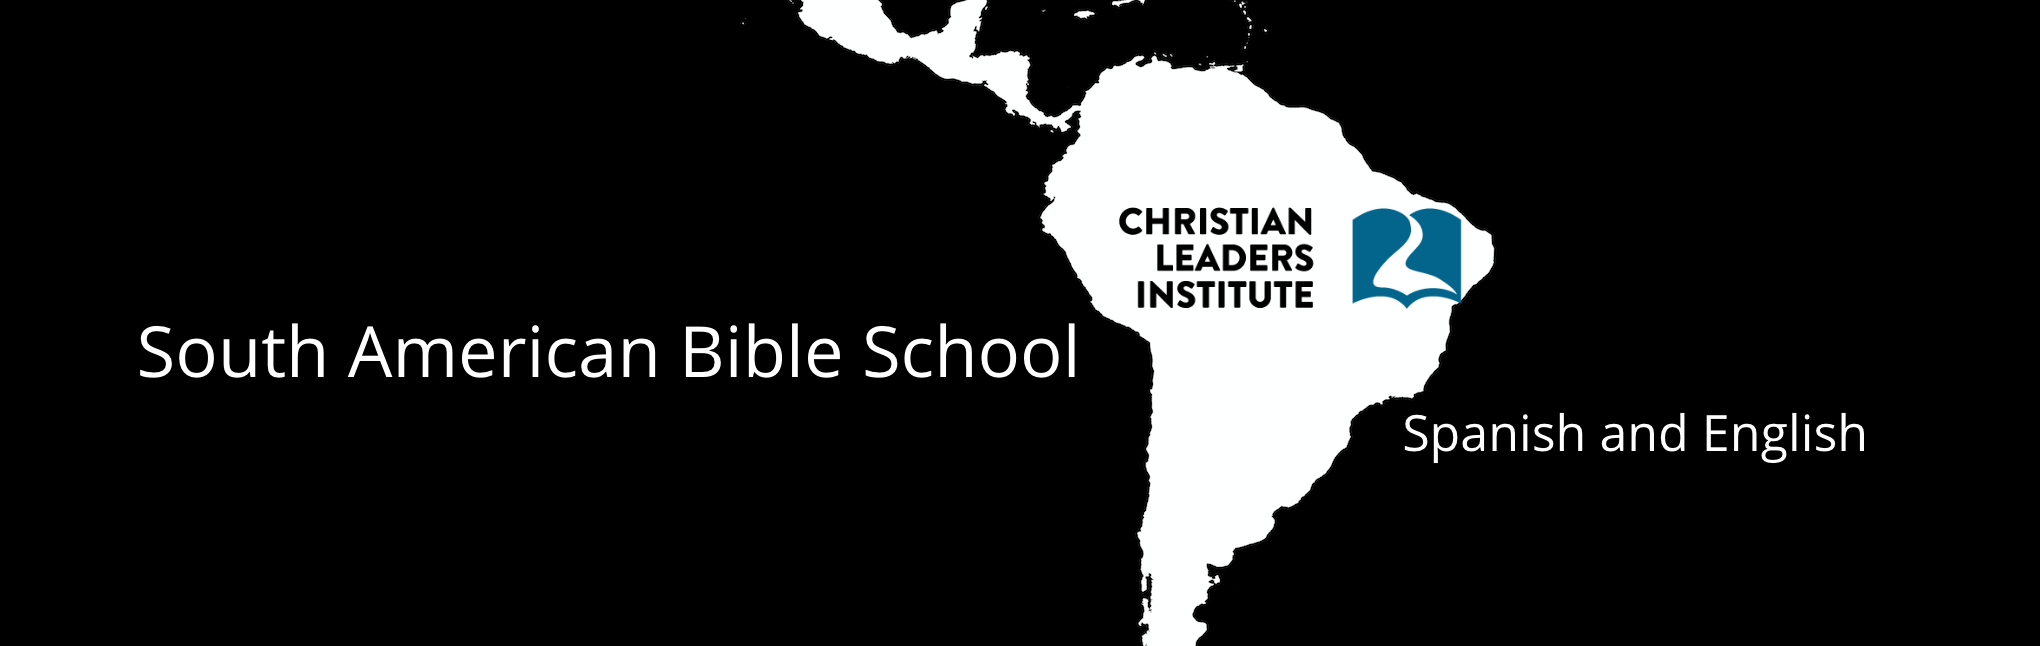 South American Bible School